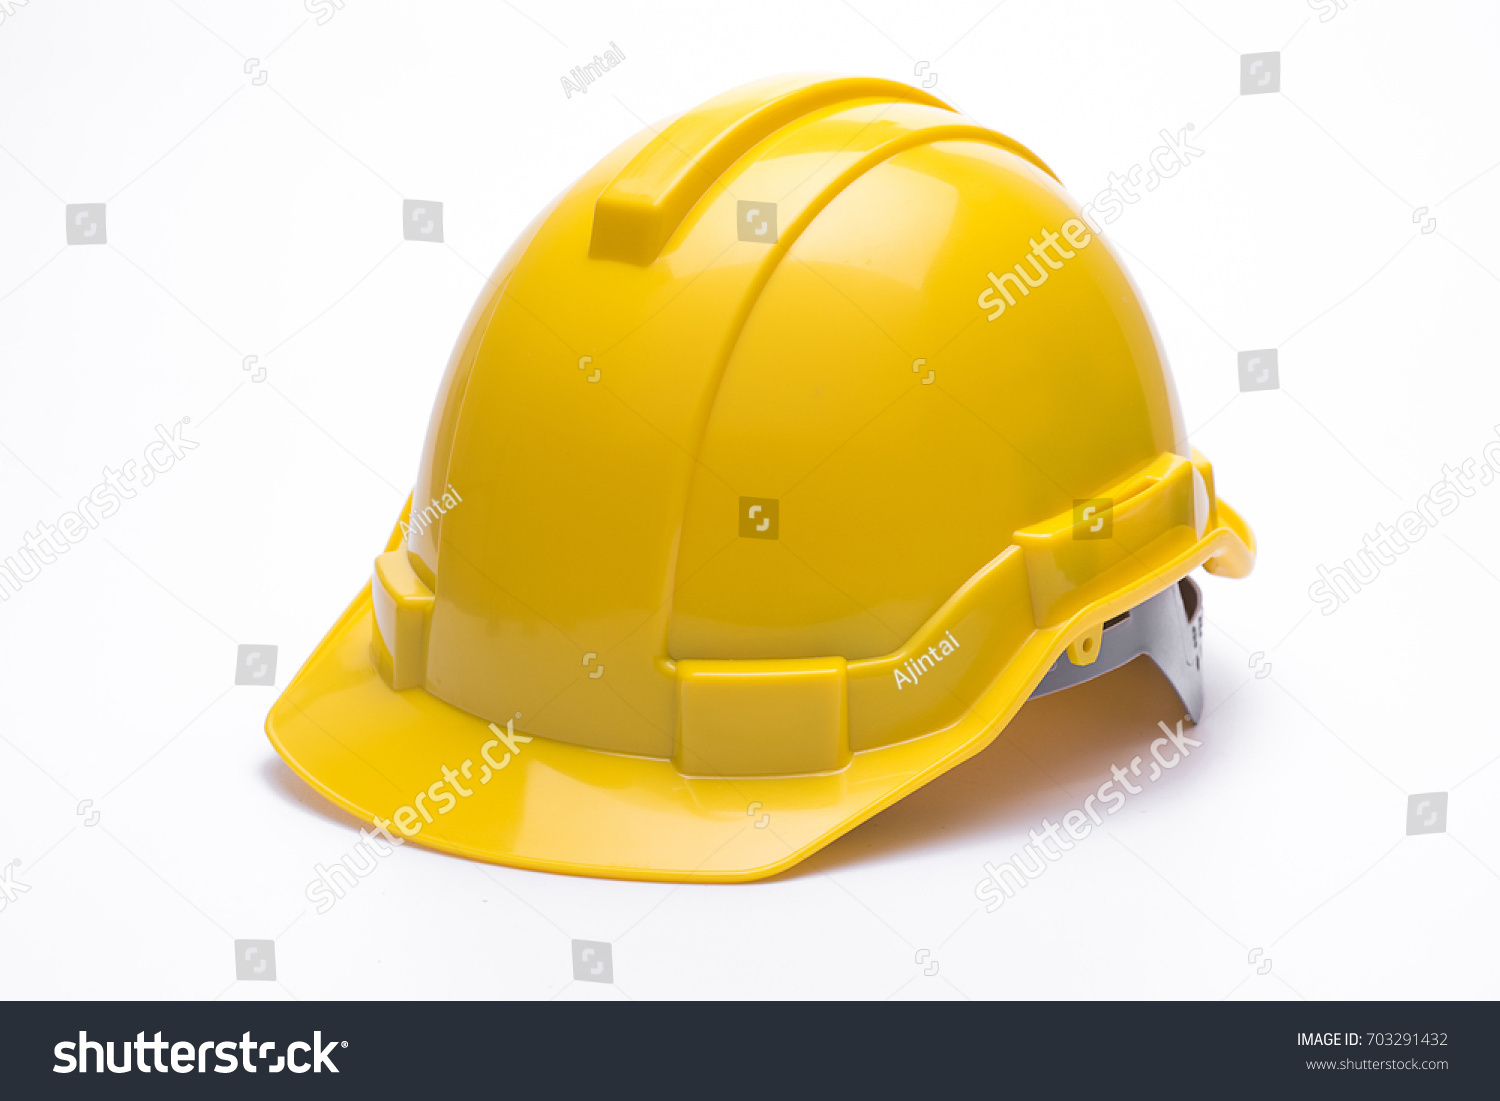 Yellow safety helmet isolated on white background #703291432